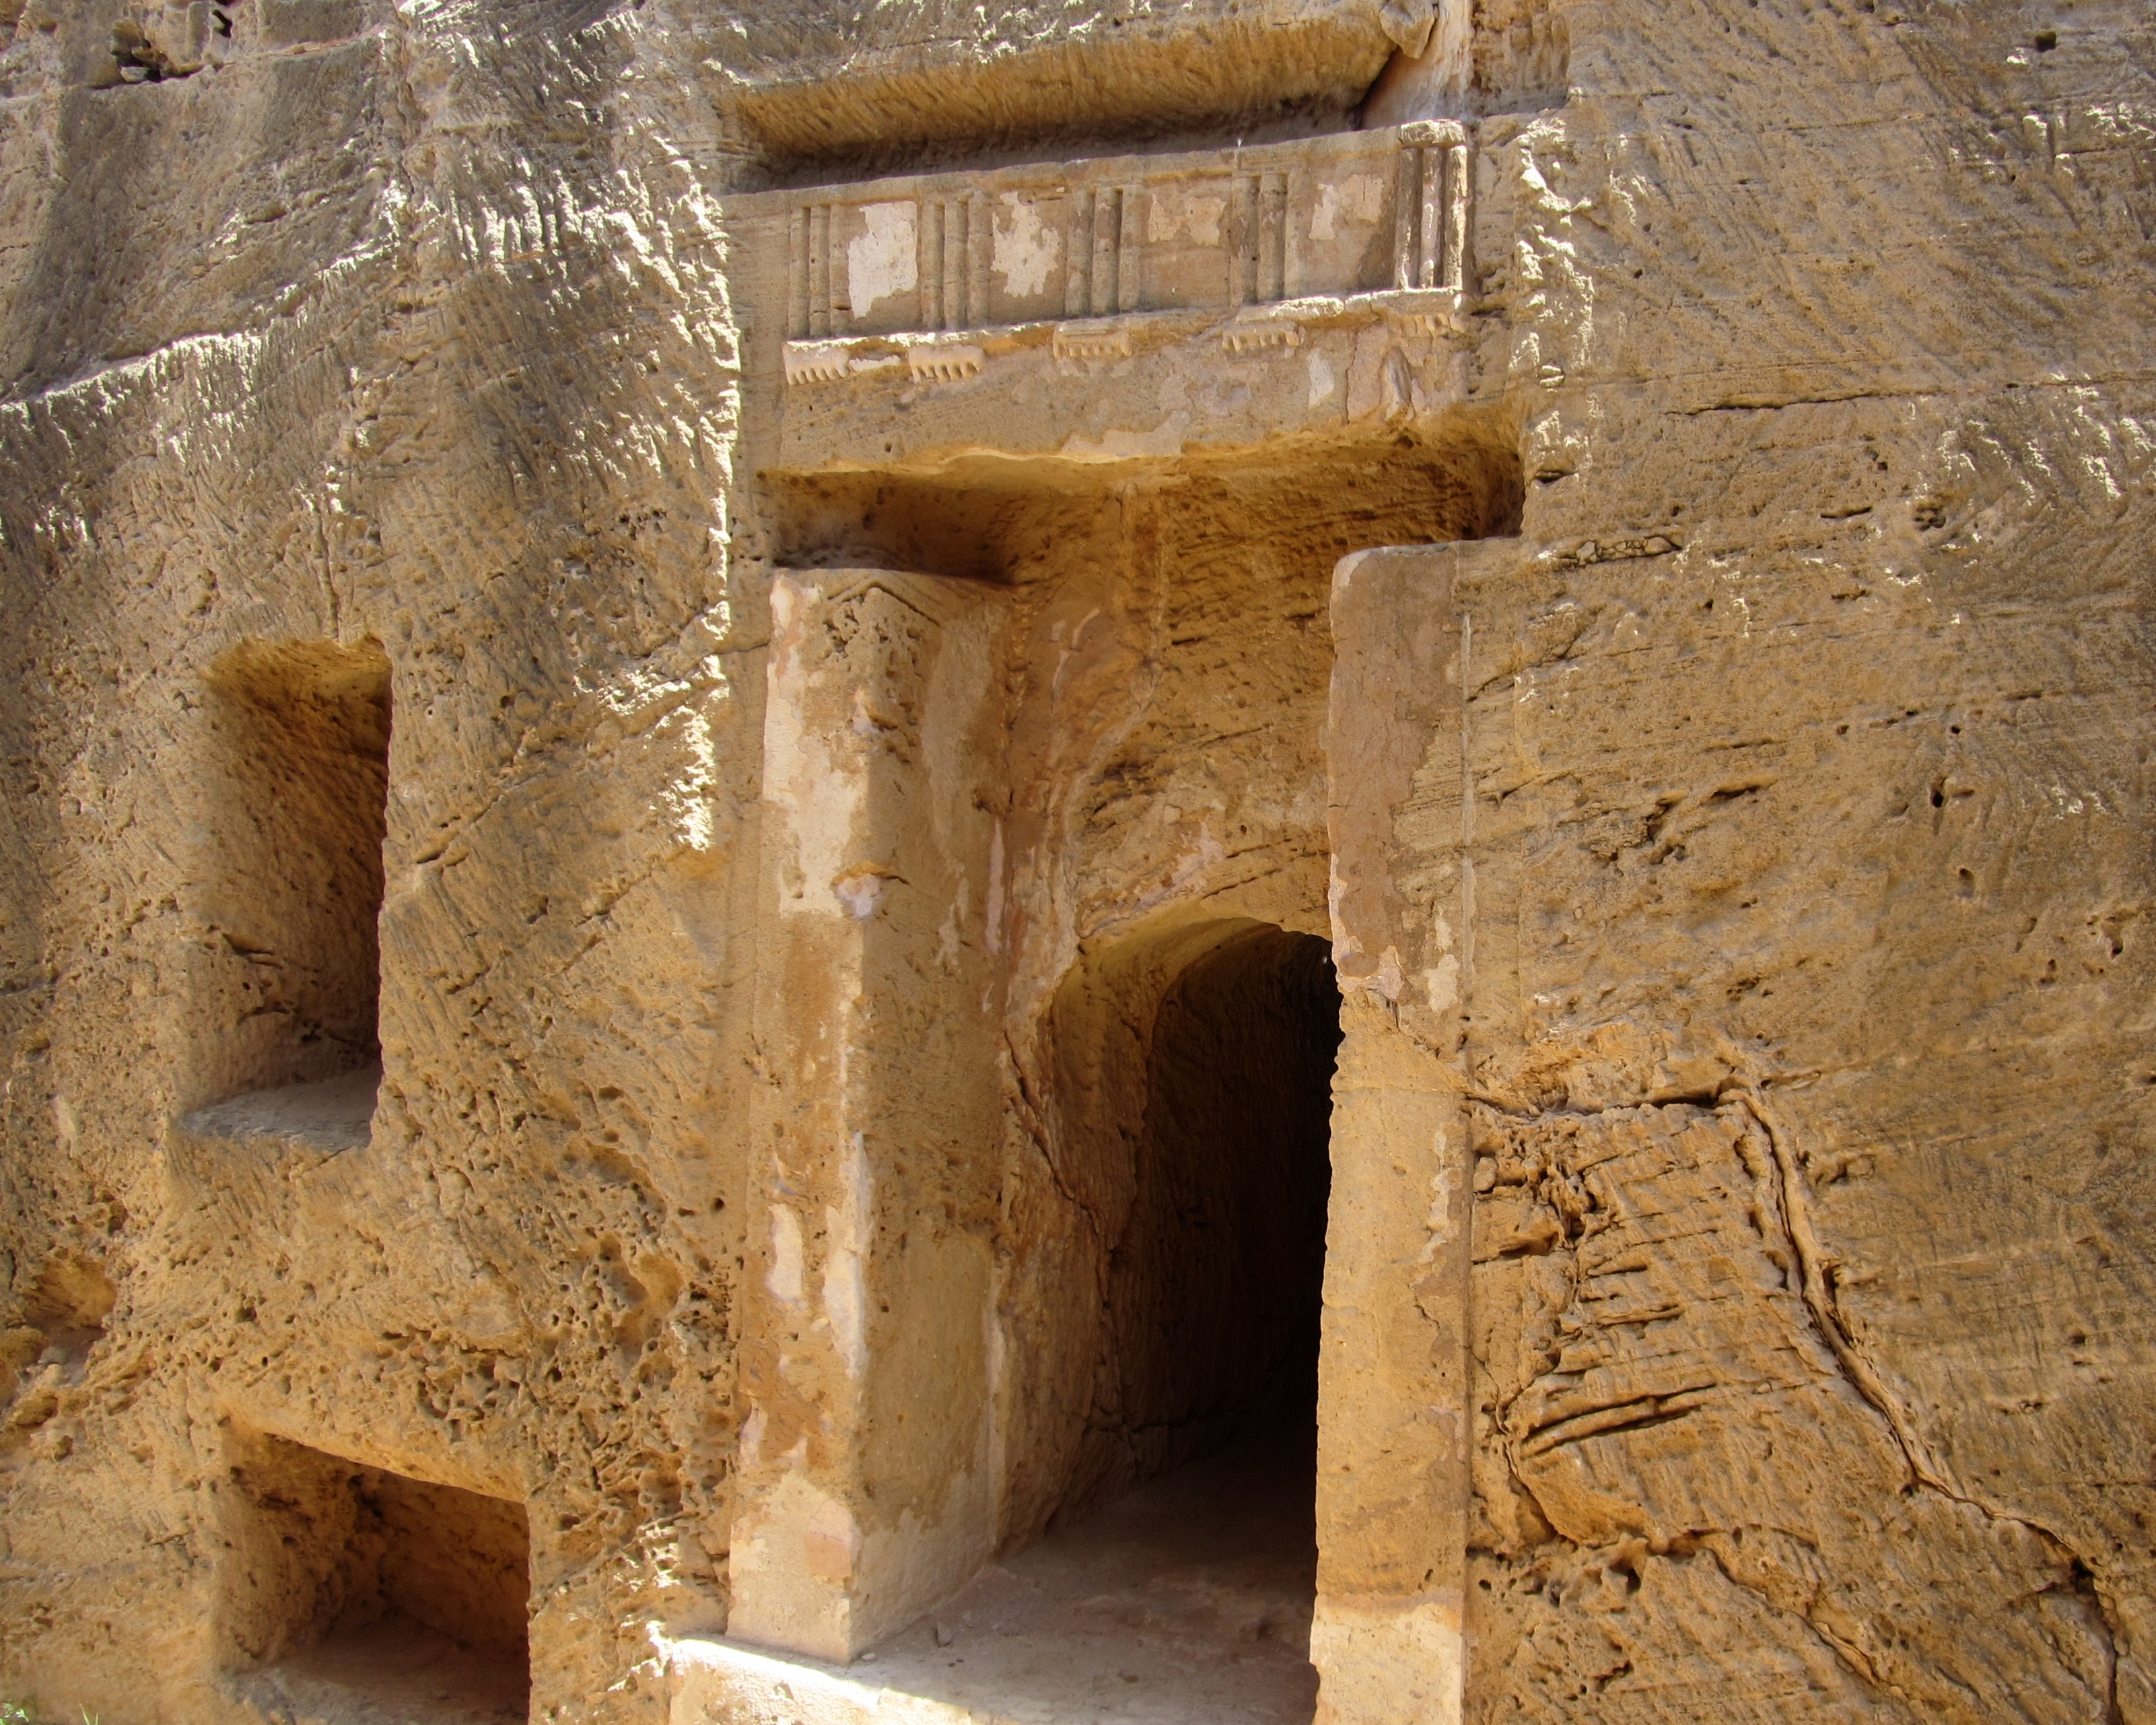 File:Tombs of the Kings Paphos Cyprus Tomb 8 1.JPG - Wikimedia Commons